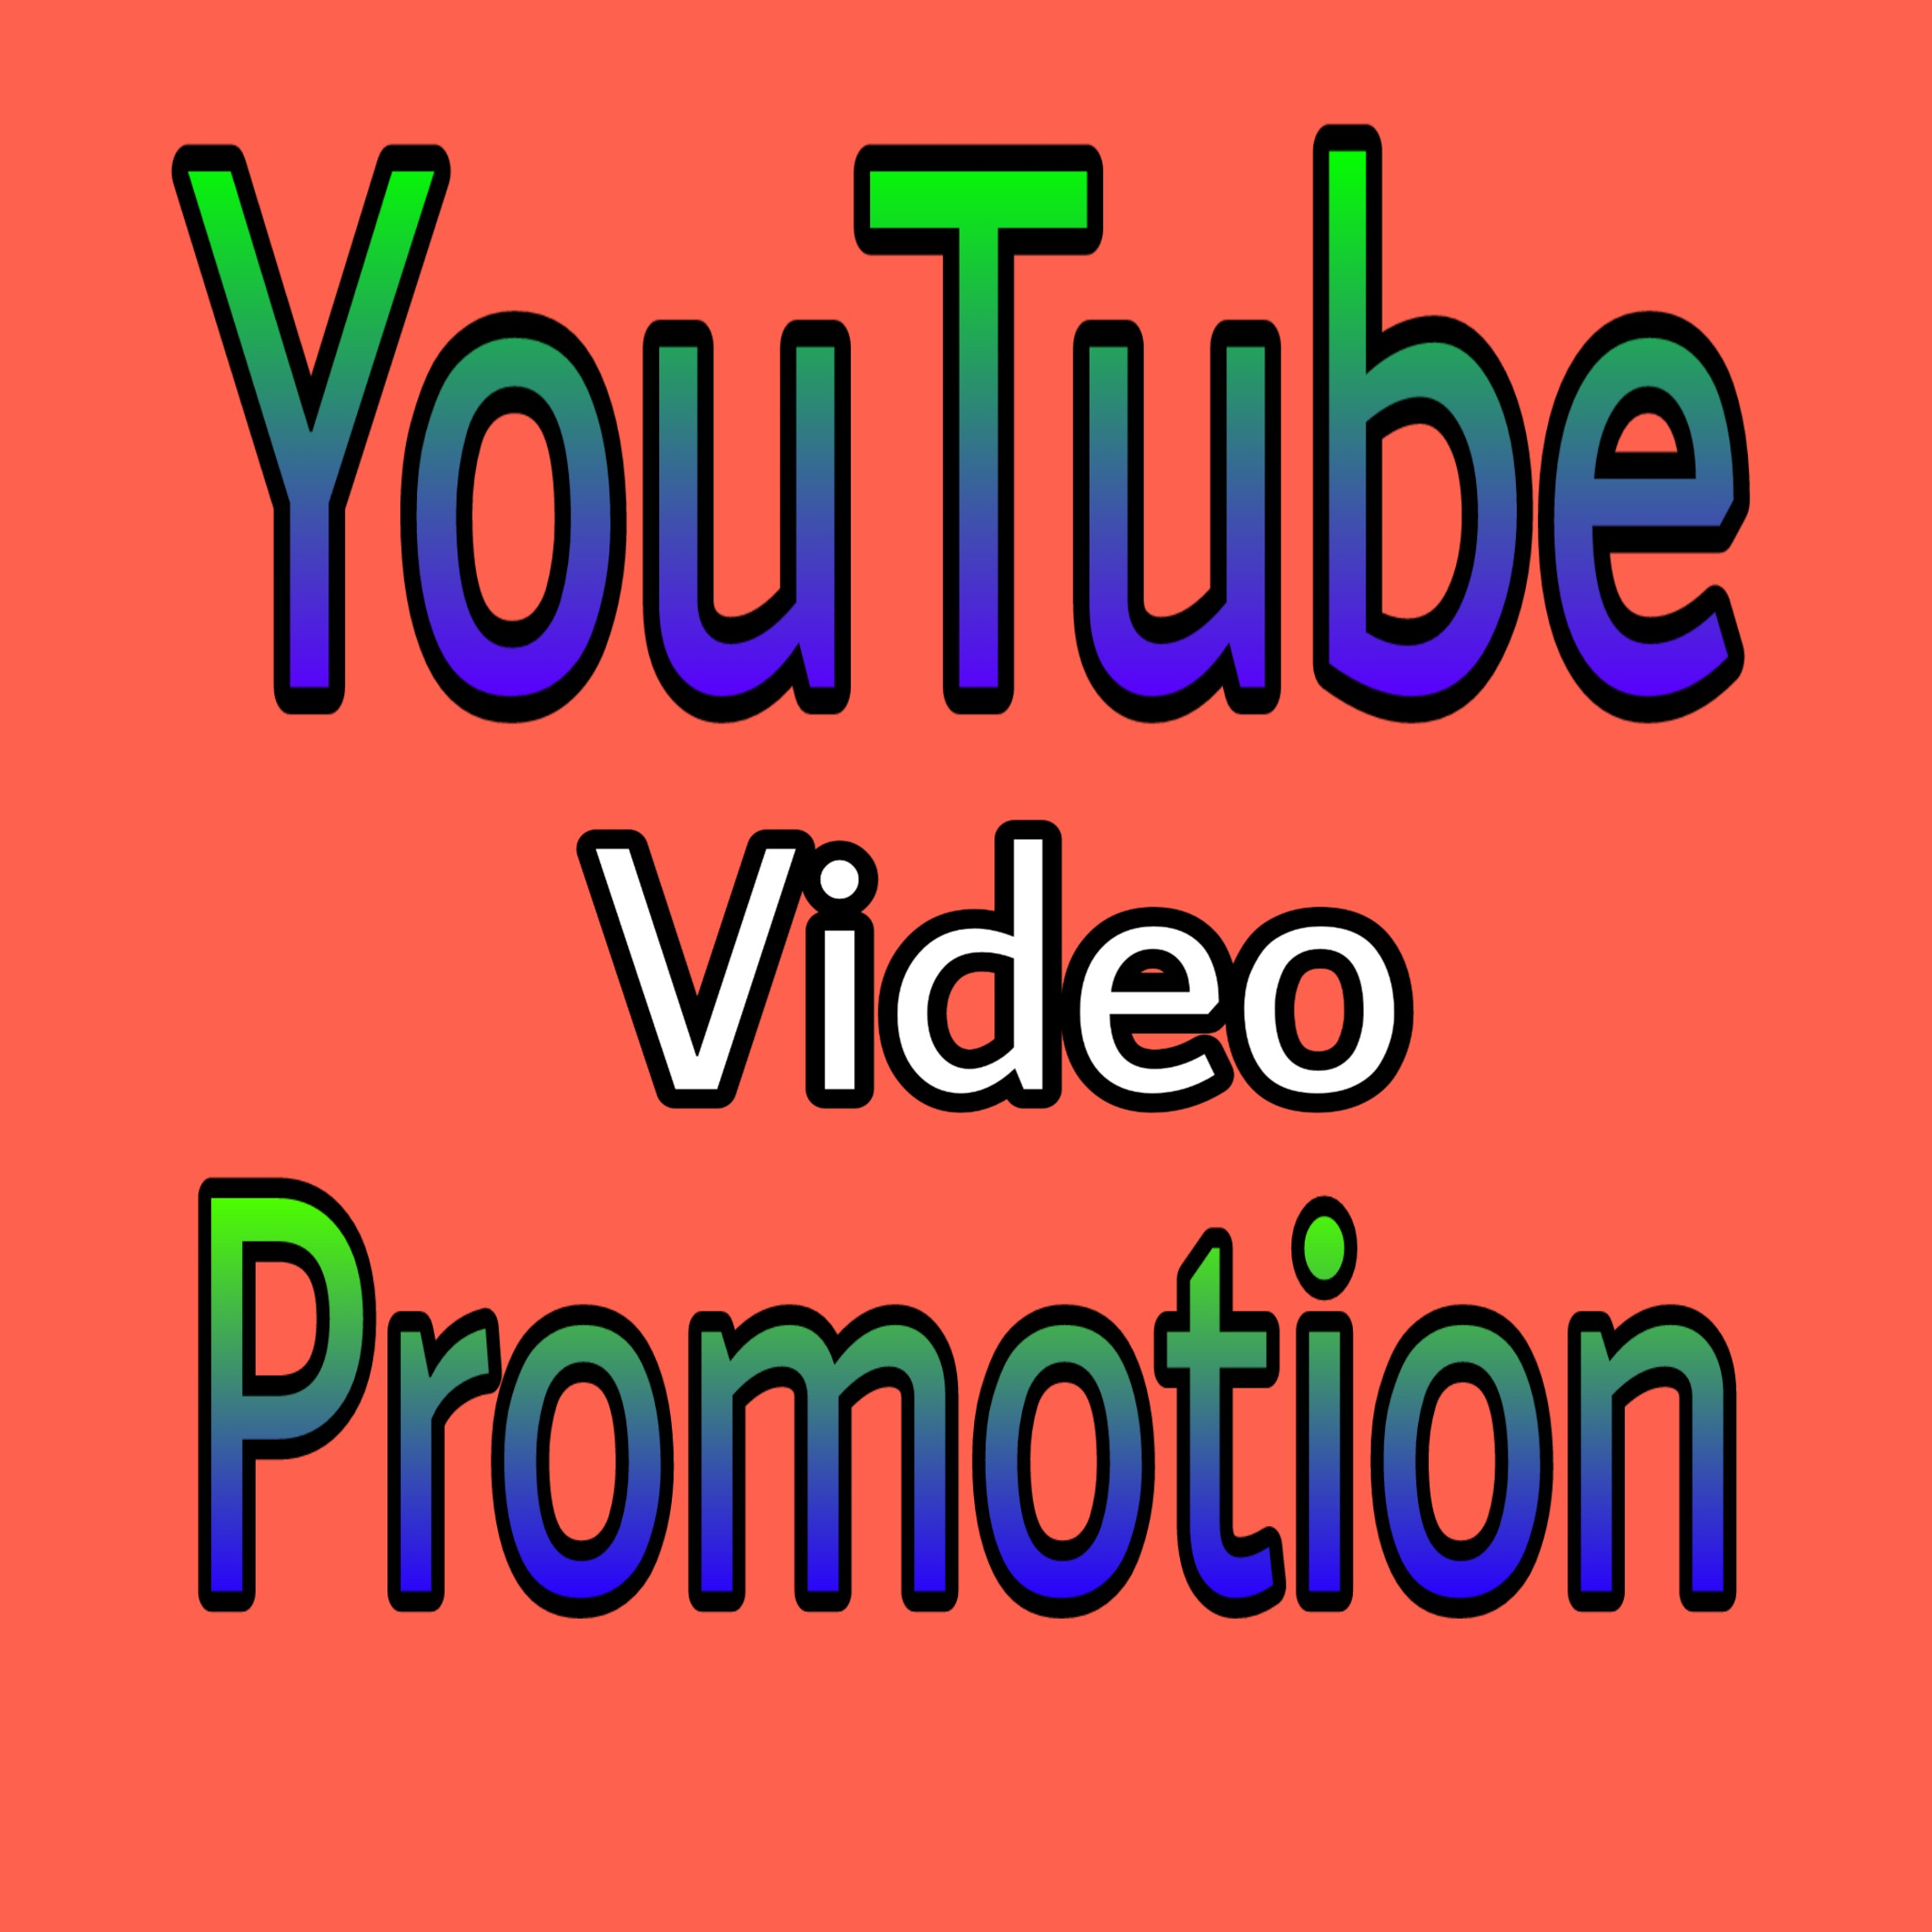 YouTube video Promotion via and Marketing